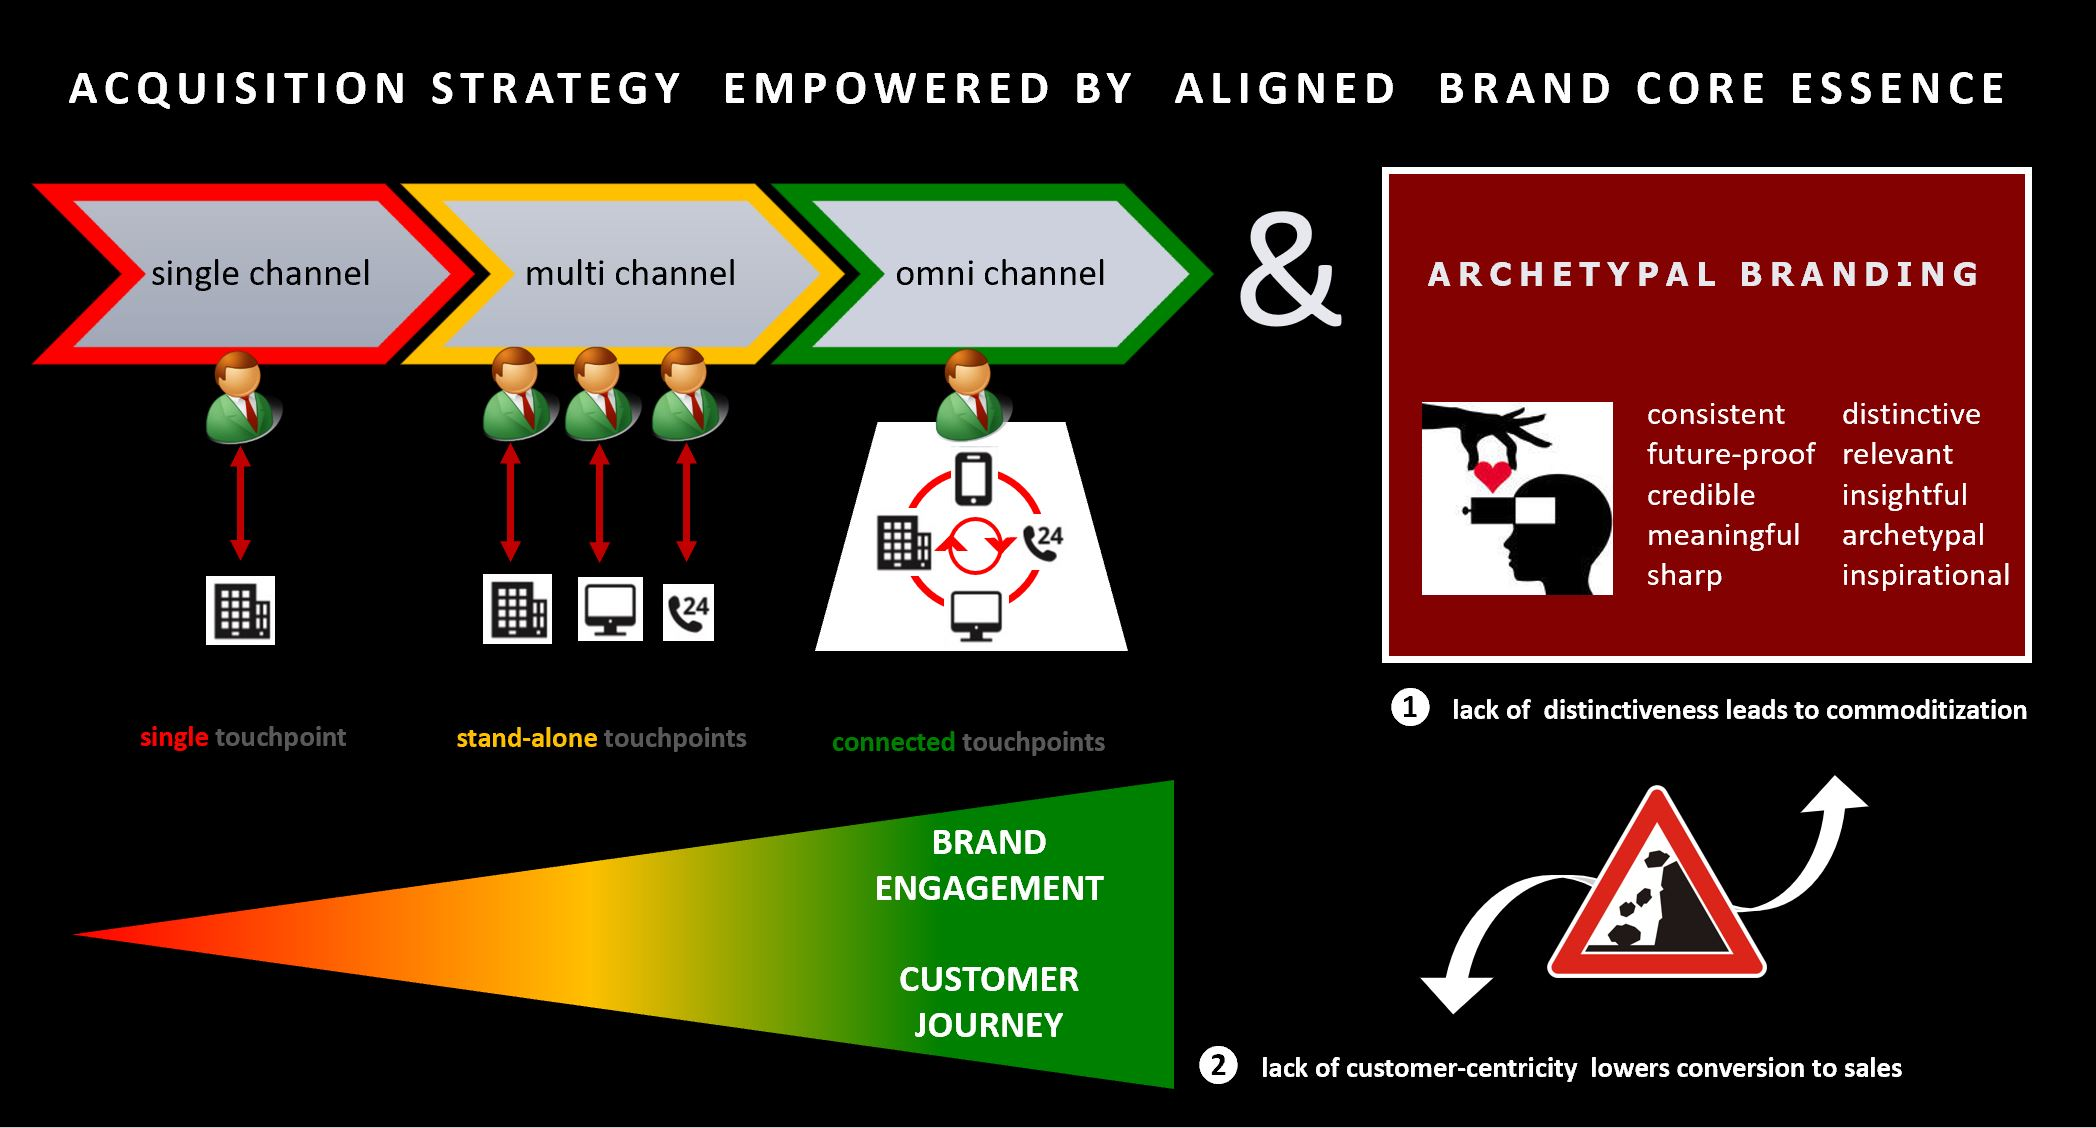 digital excellence picture figuring the interdepency between successful acquisition strategy and archetypal branding